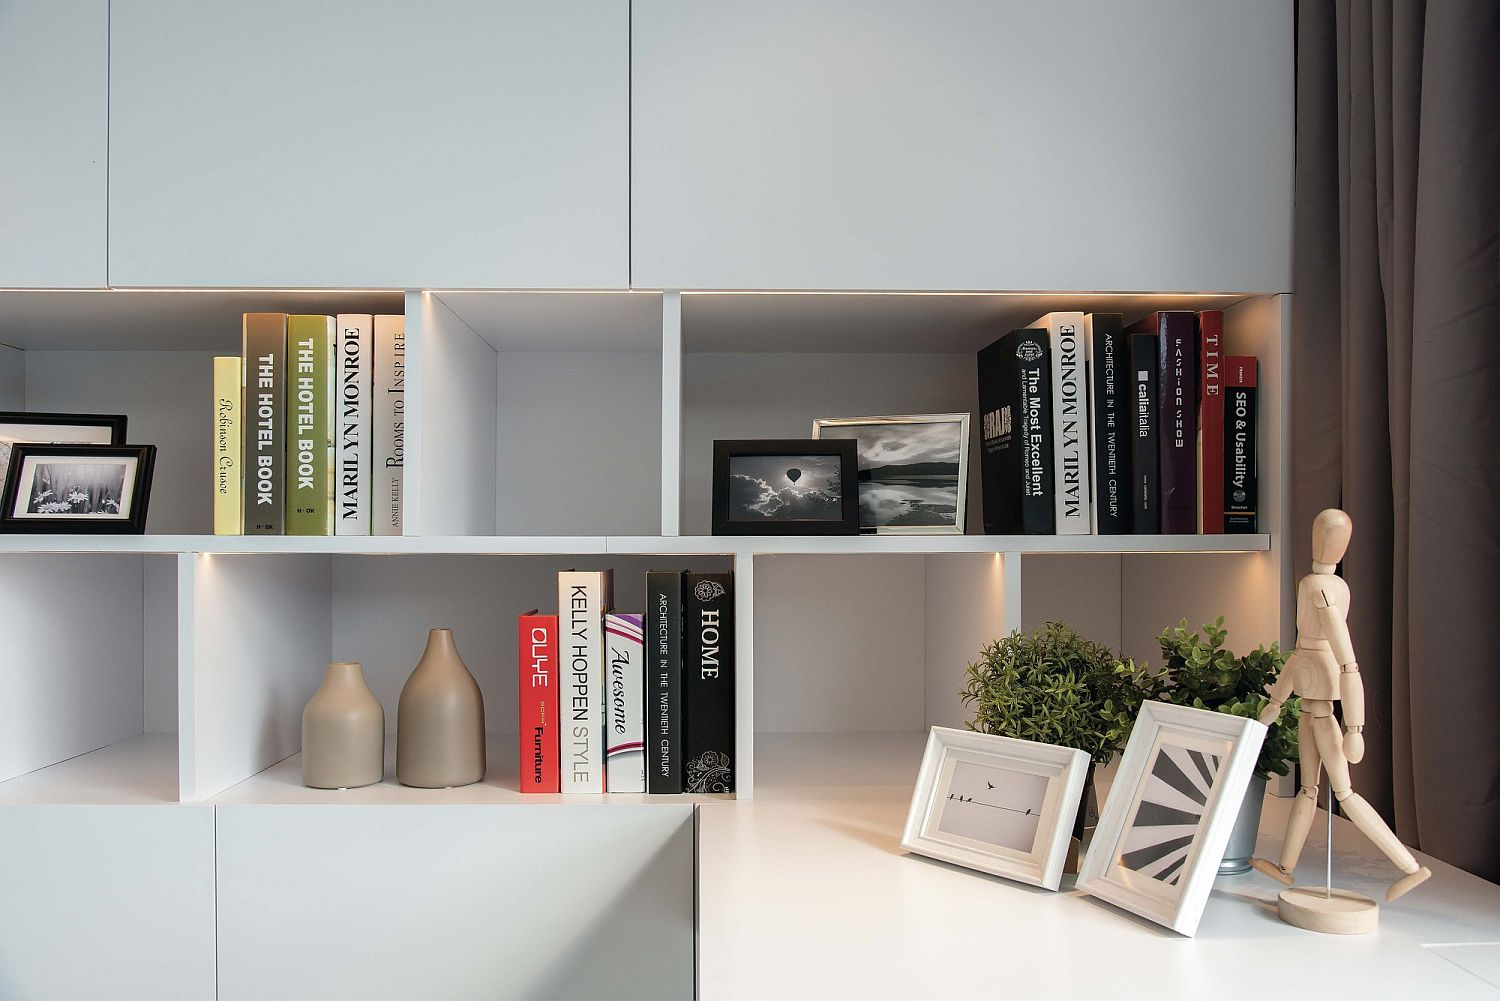 LED-lighting-and-clever-space-savvy-shelving-inside-the-home-office